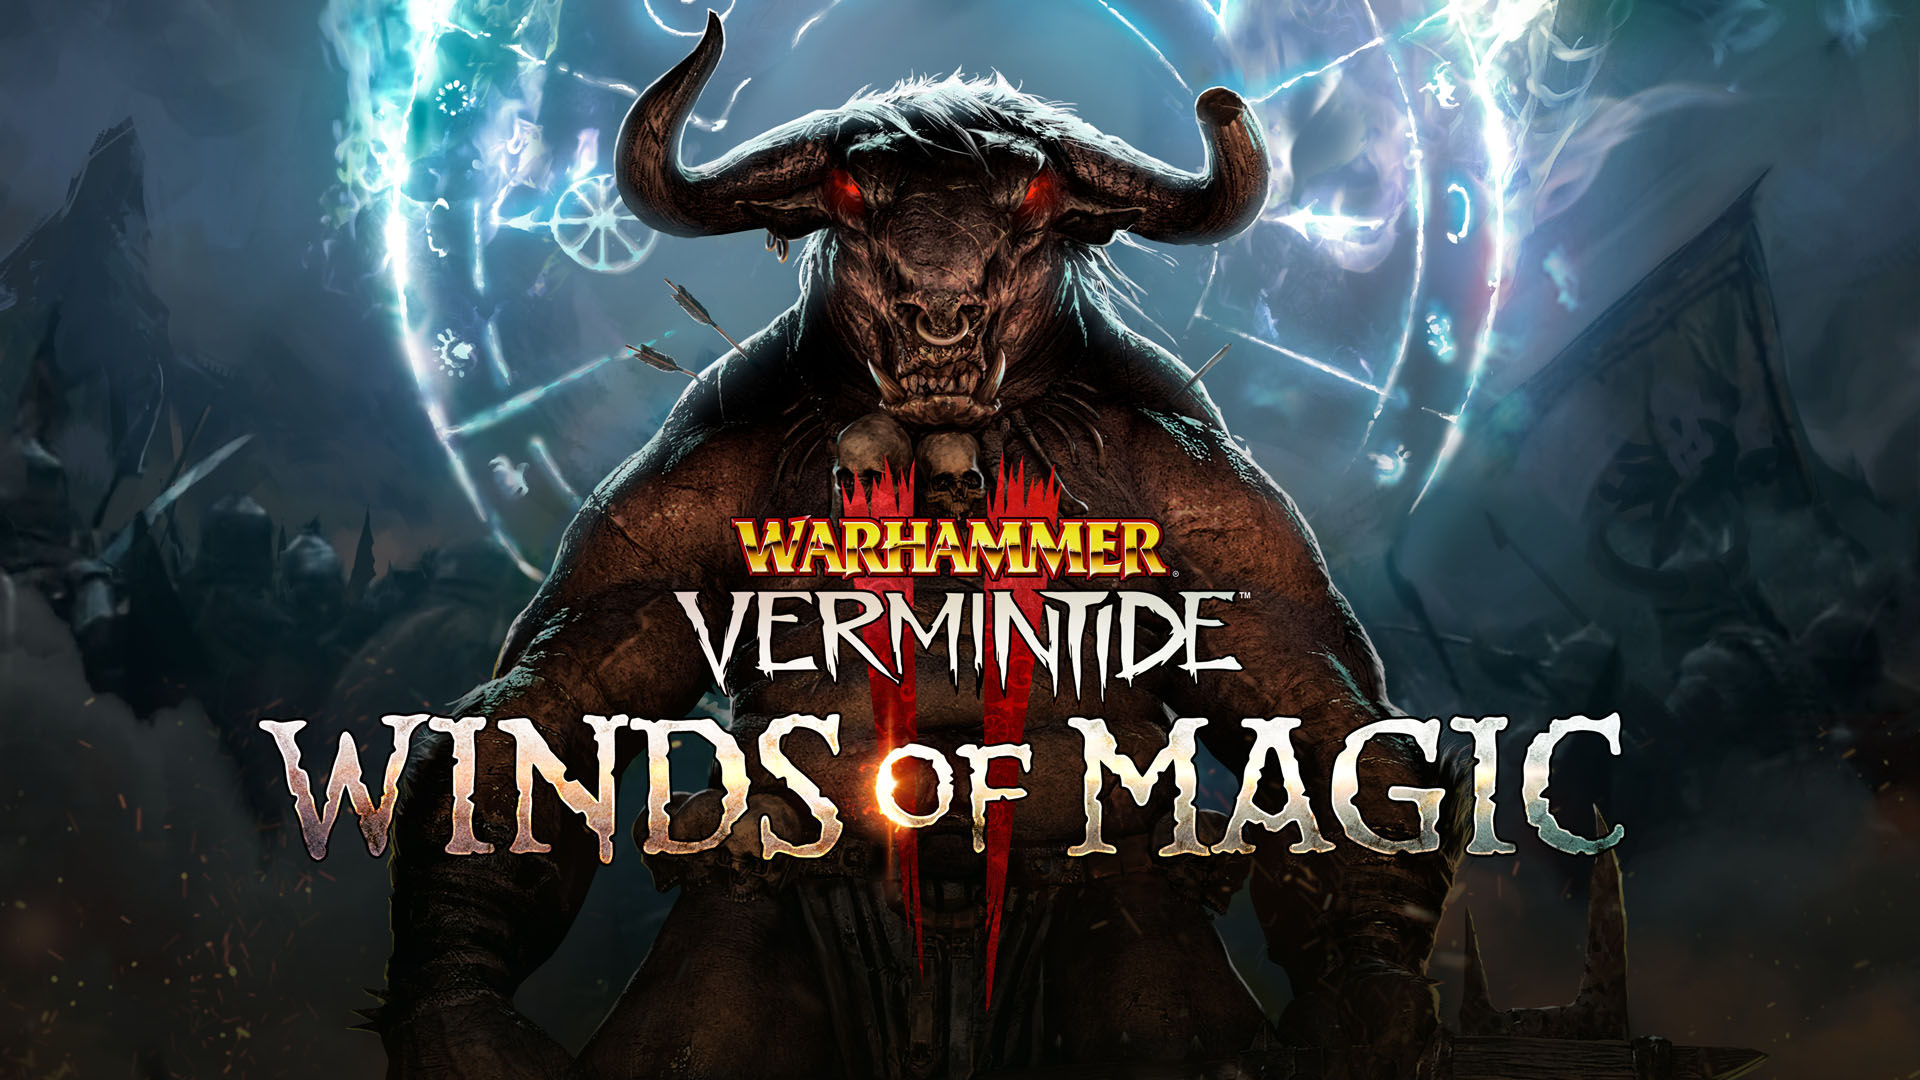 Fatshark presenterar Vermintide 2 - Winds of Magic